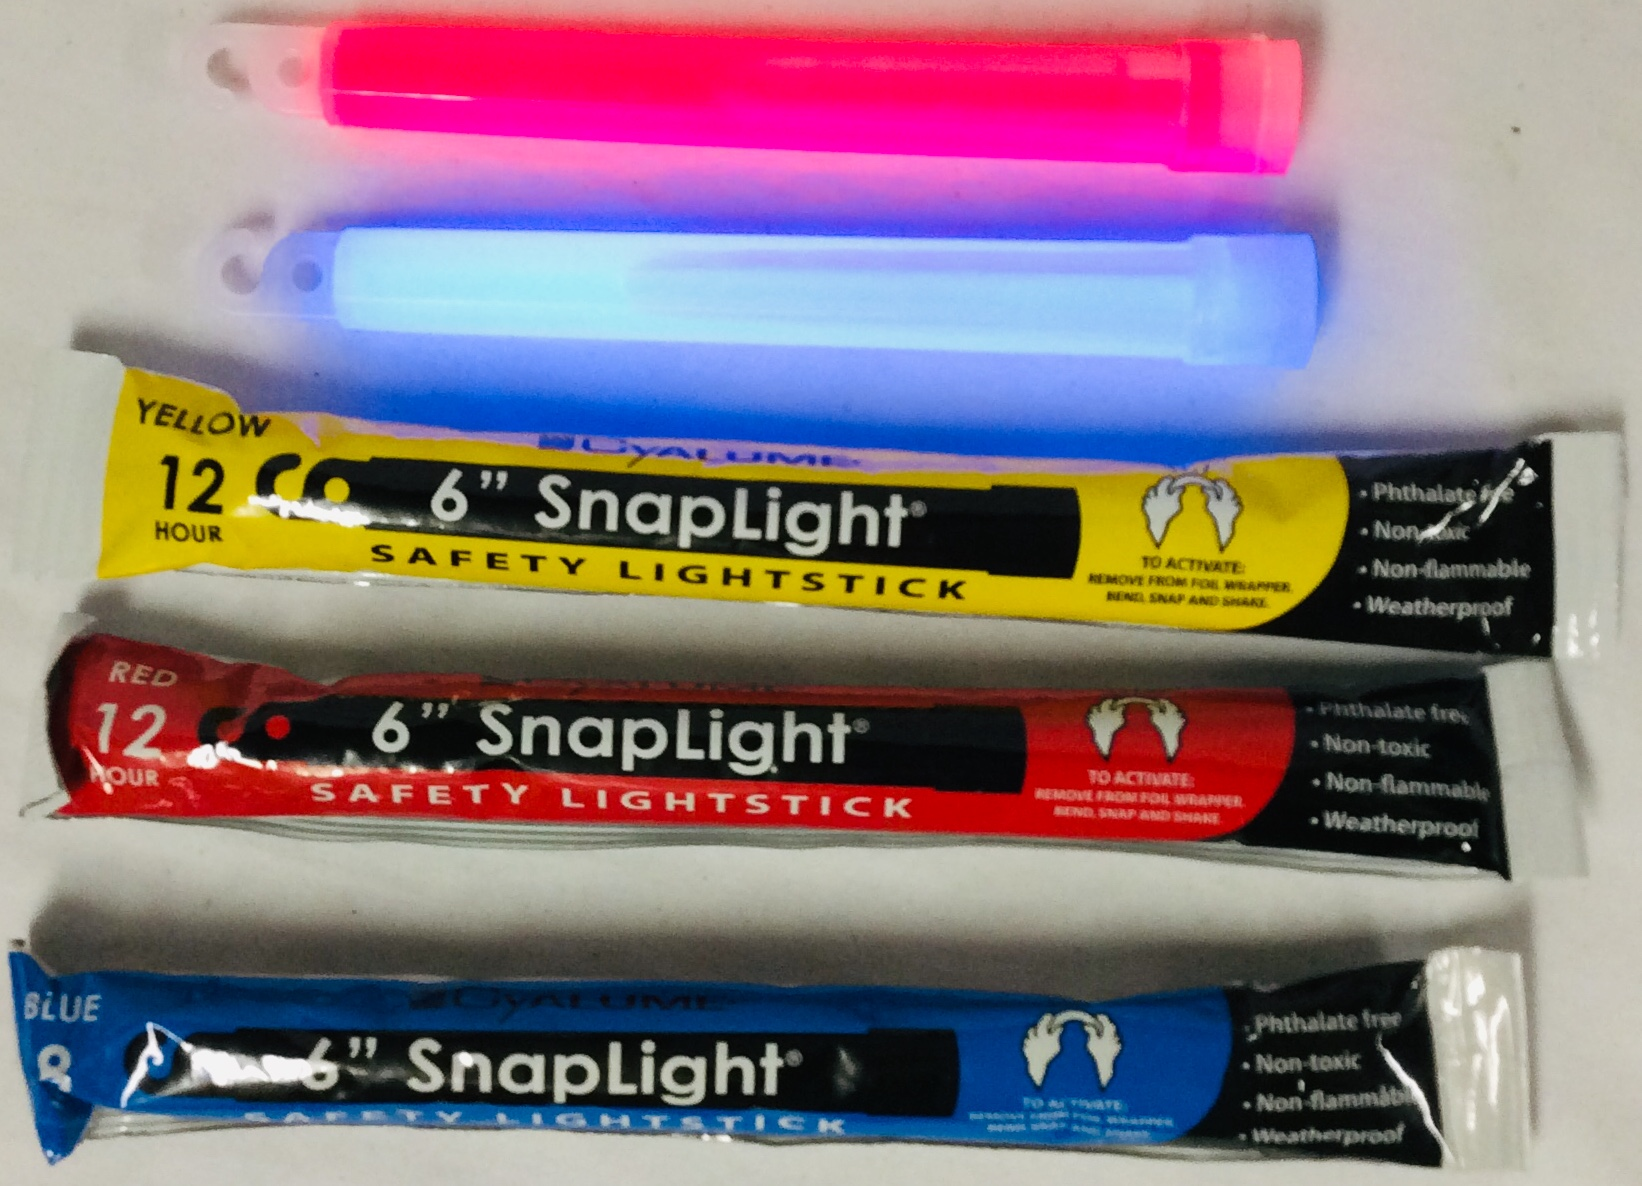 Box with multiple glow sticks/snap lights in yellow, red and blue